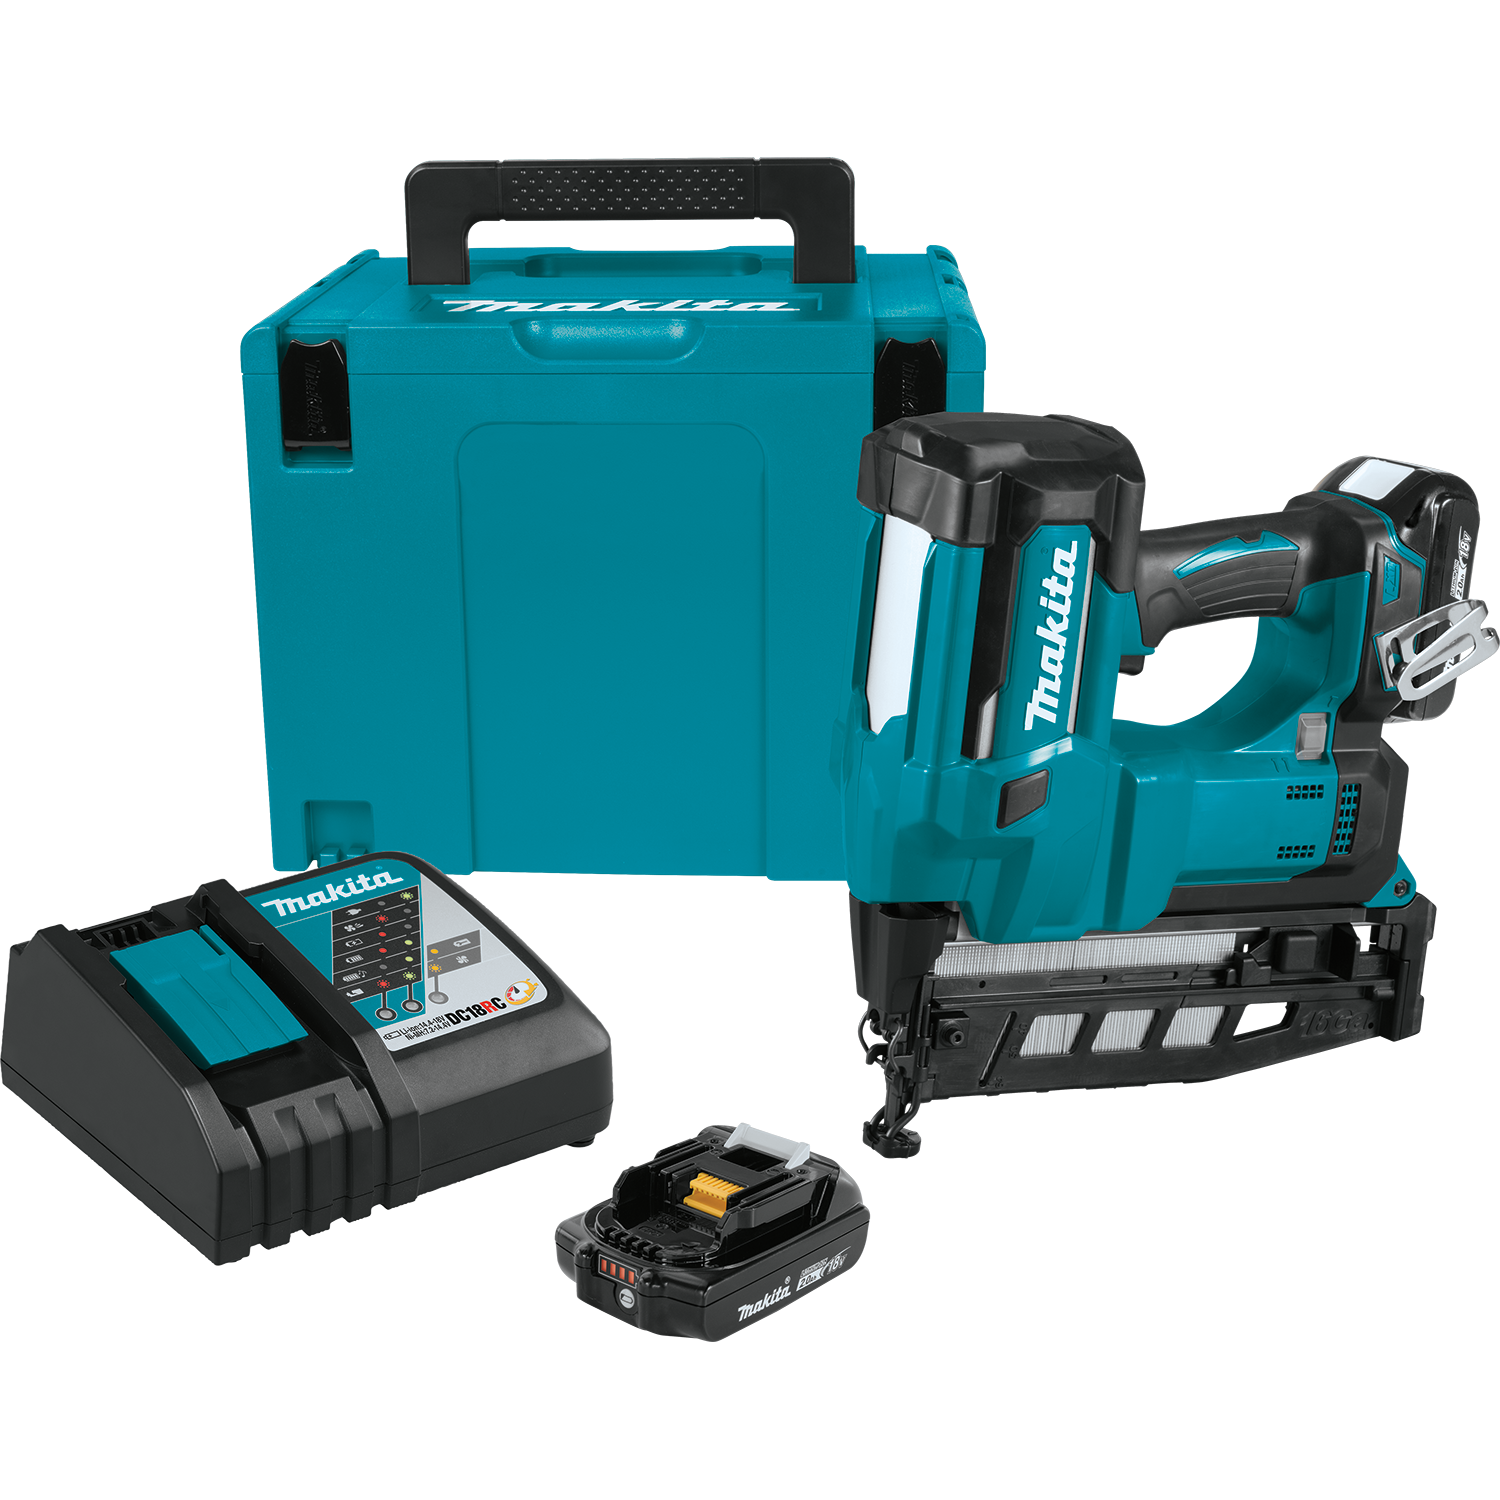 Makita 18V Cordless Brad Nailer LXT Lithium-Ion 18-Gauge Anti-Dry Fire Tool Only